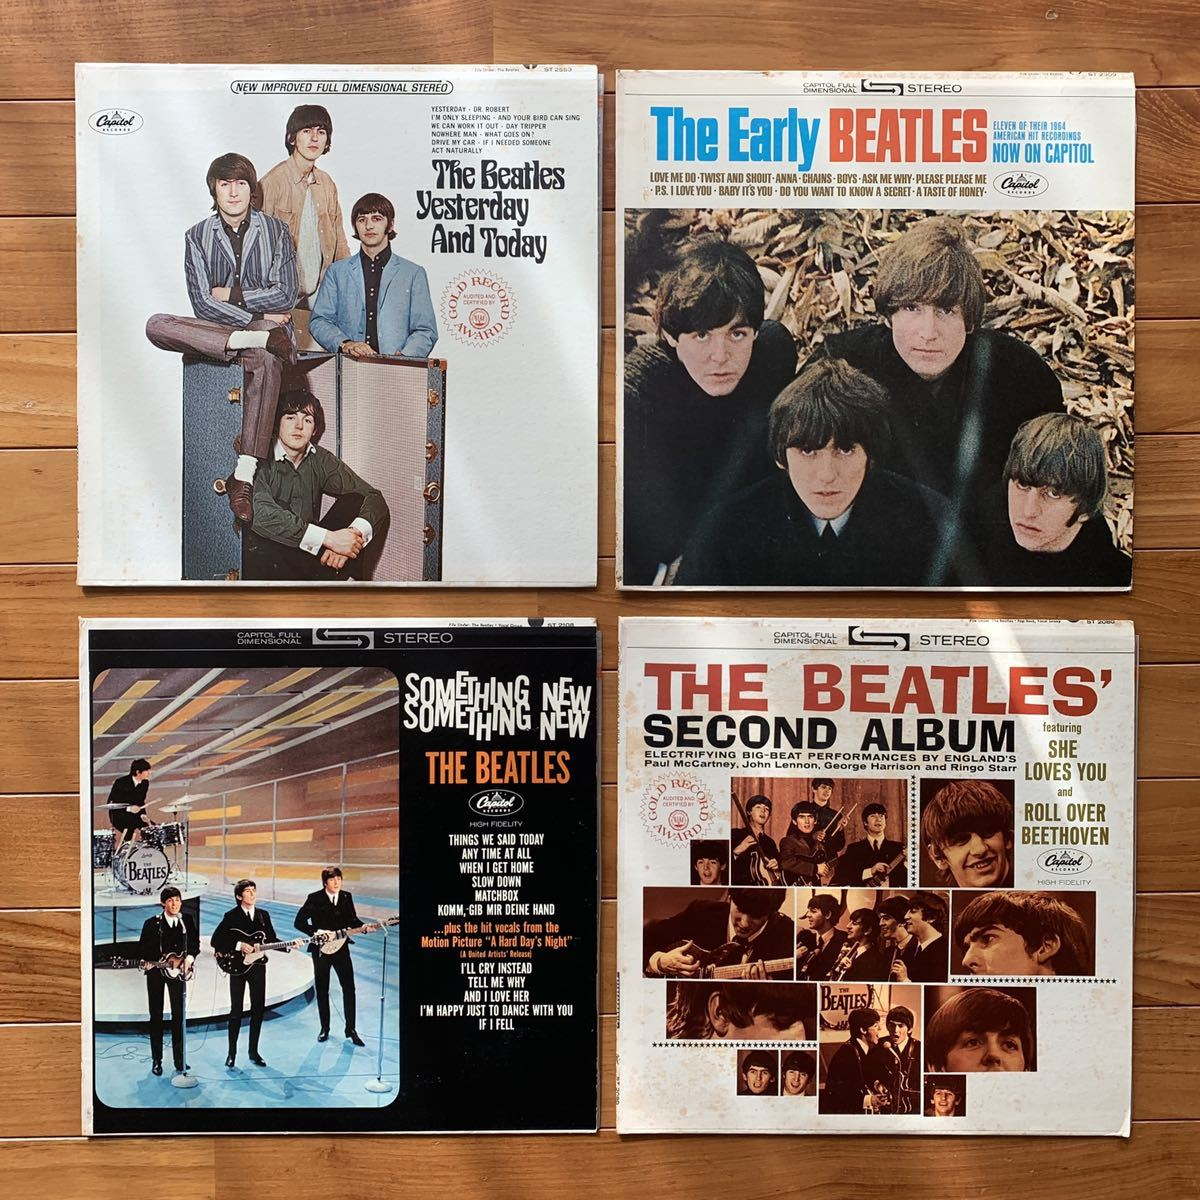 THE BEATLES FRC レコードセット ビートルズ コレクター レア Help Rubber Soul